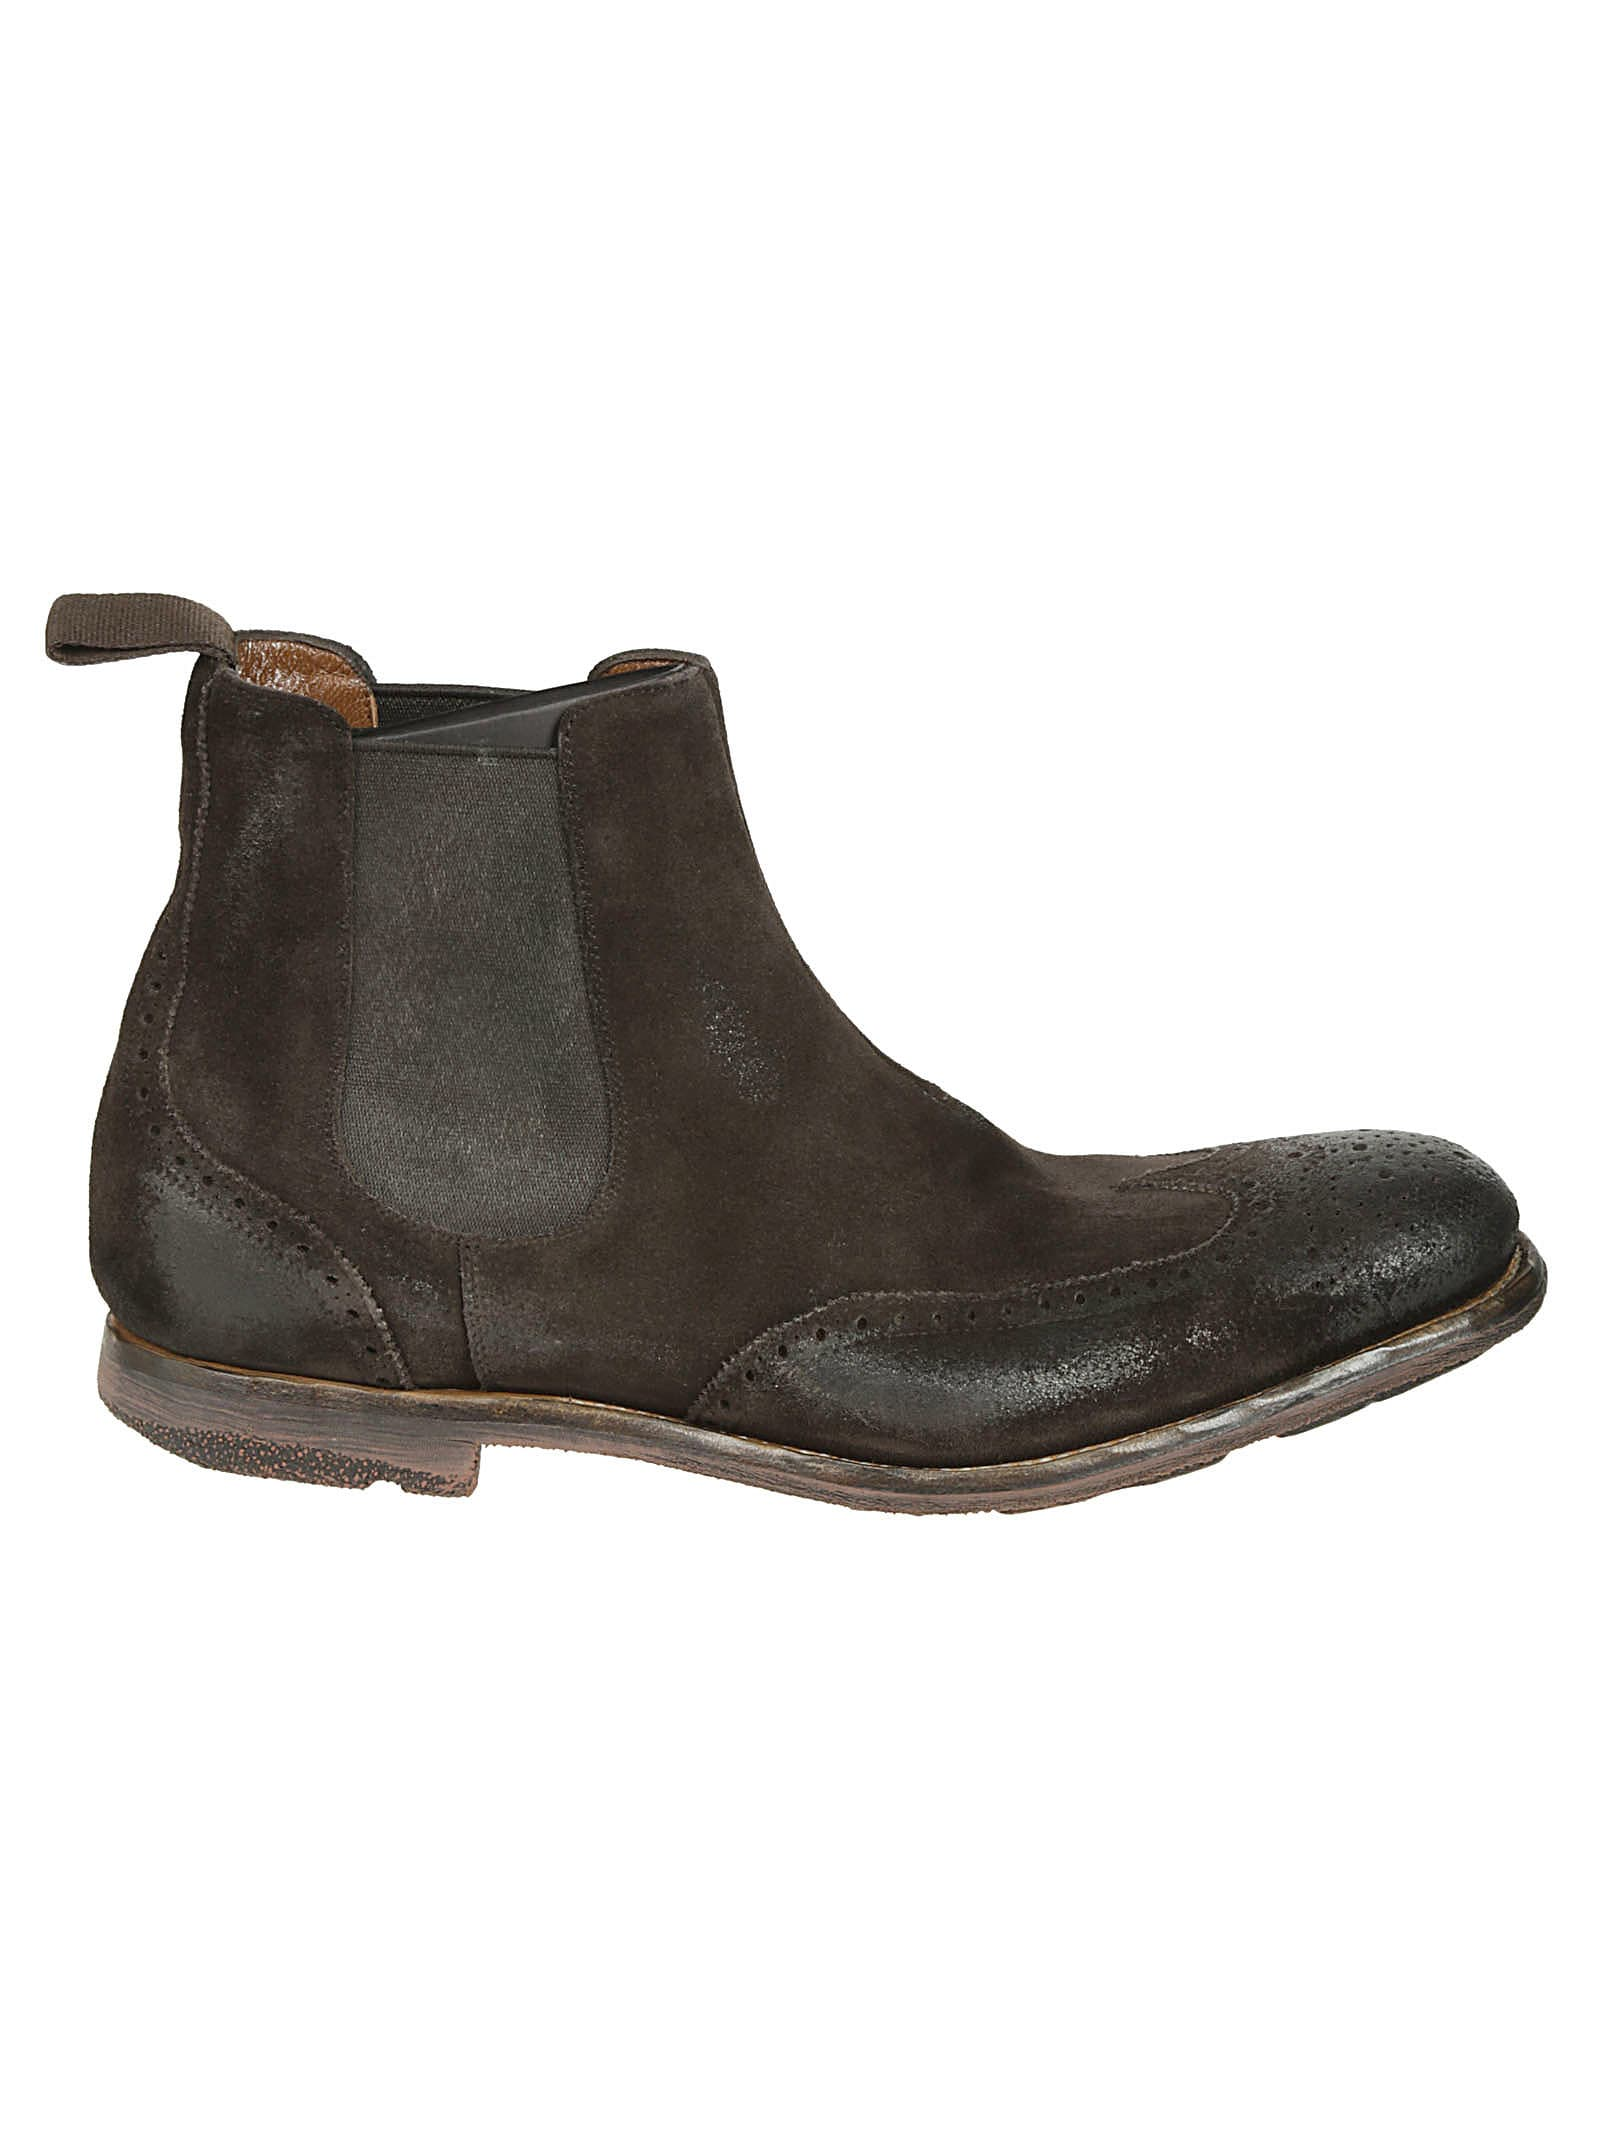 Churchs Ketsby 1930 Ankle Boots